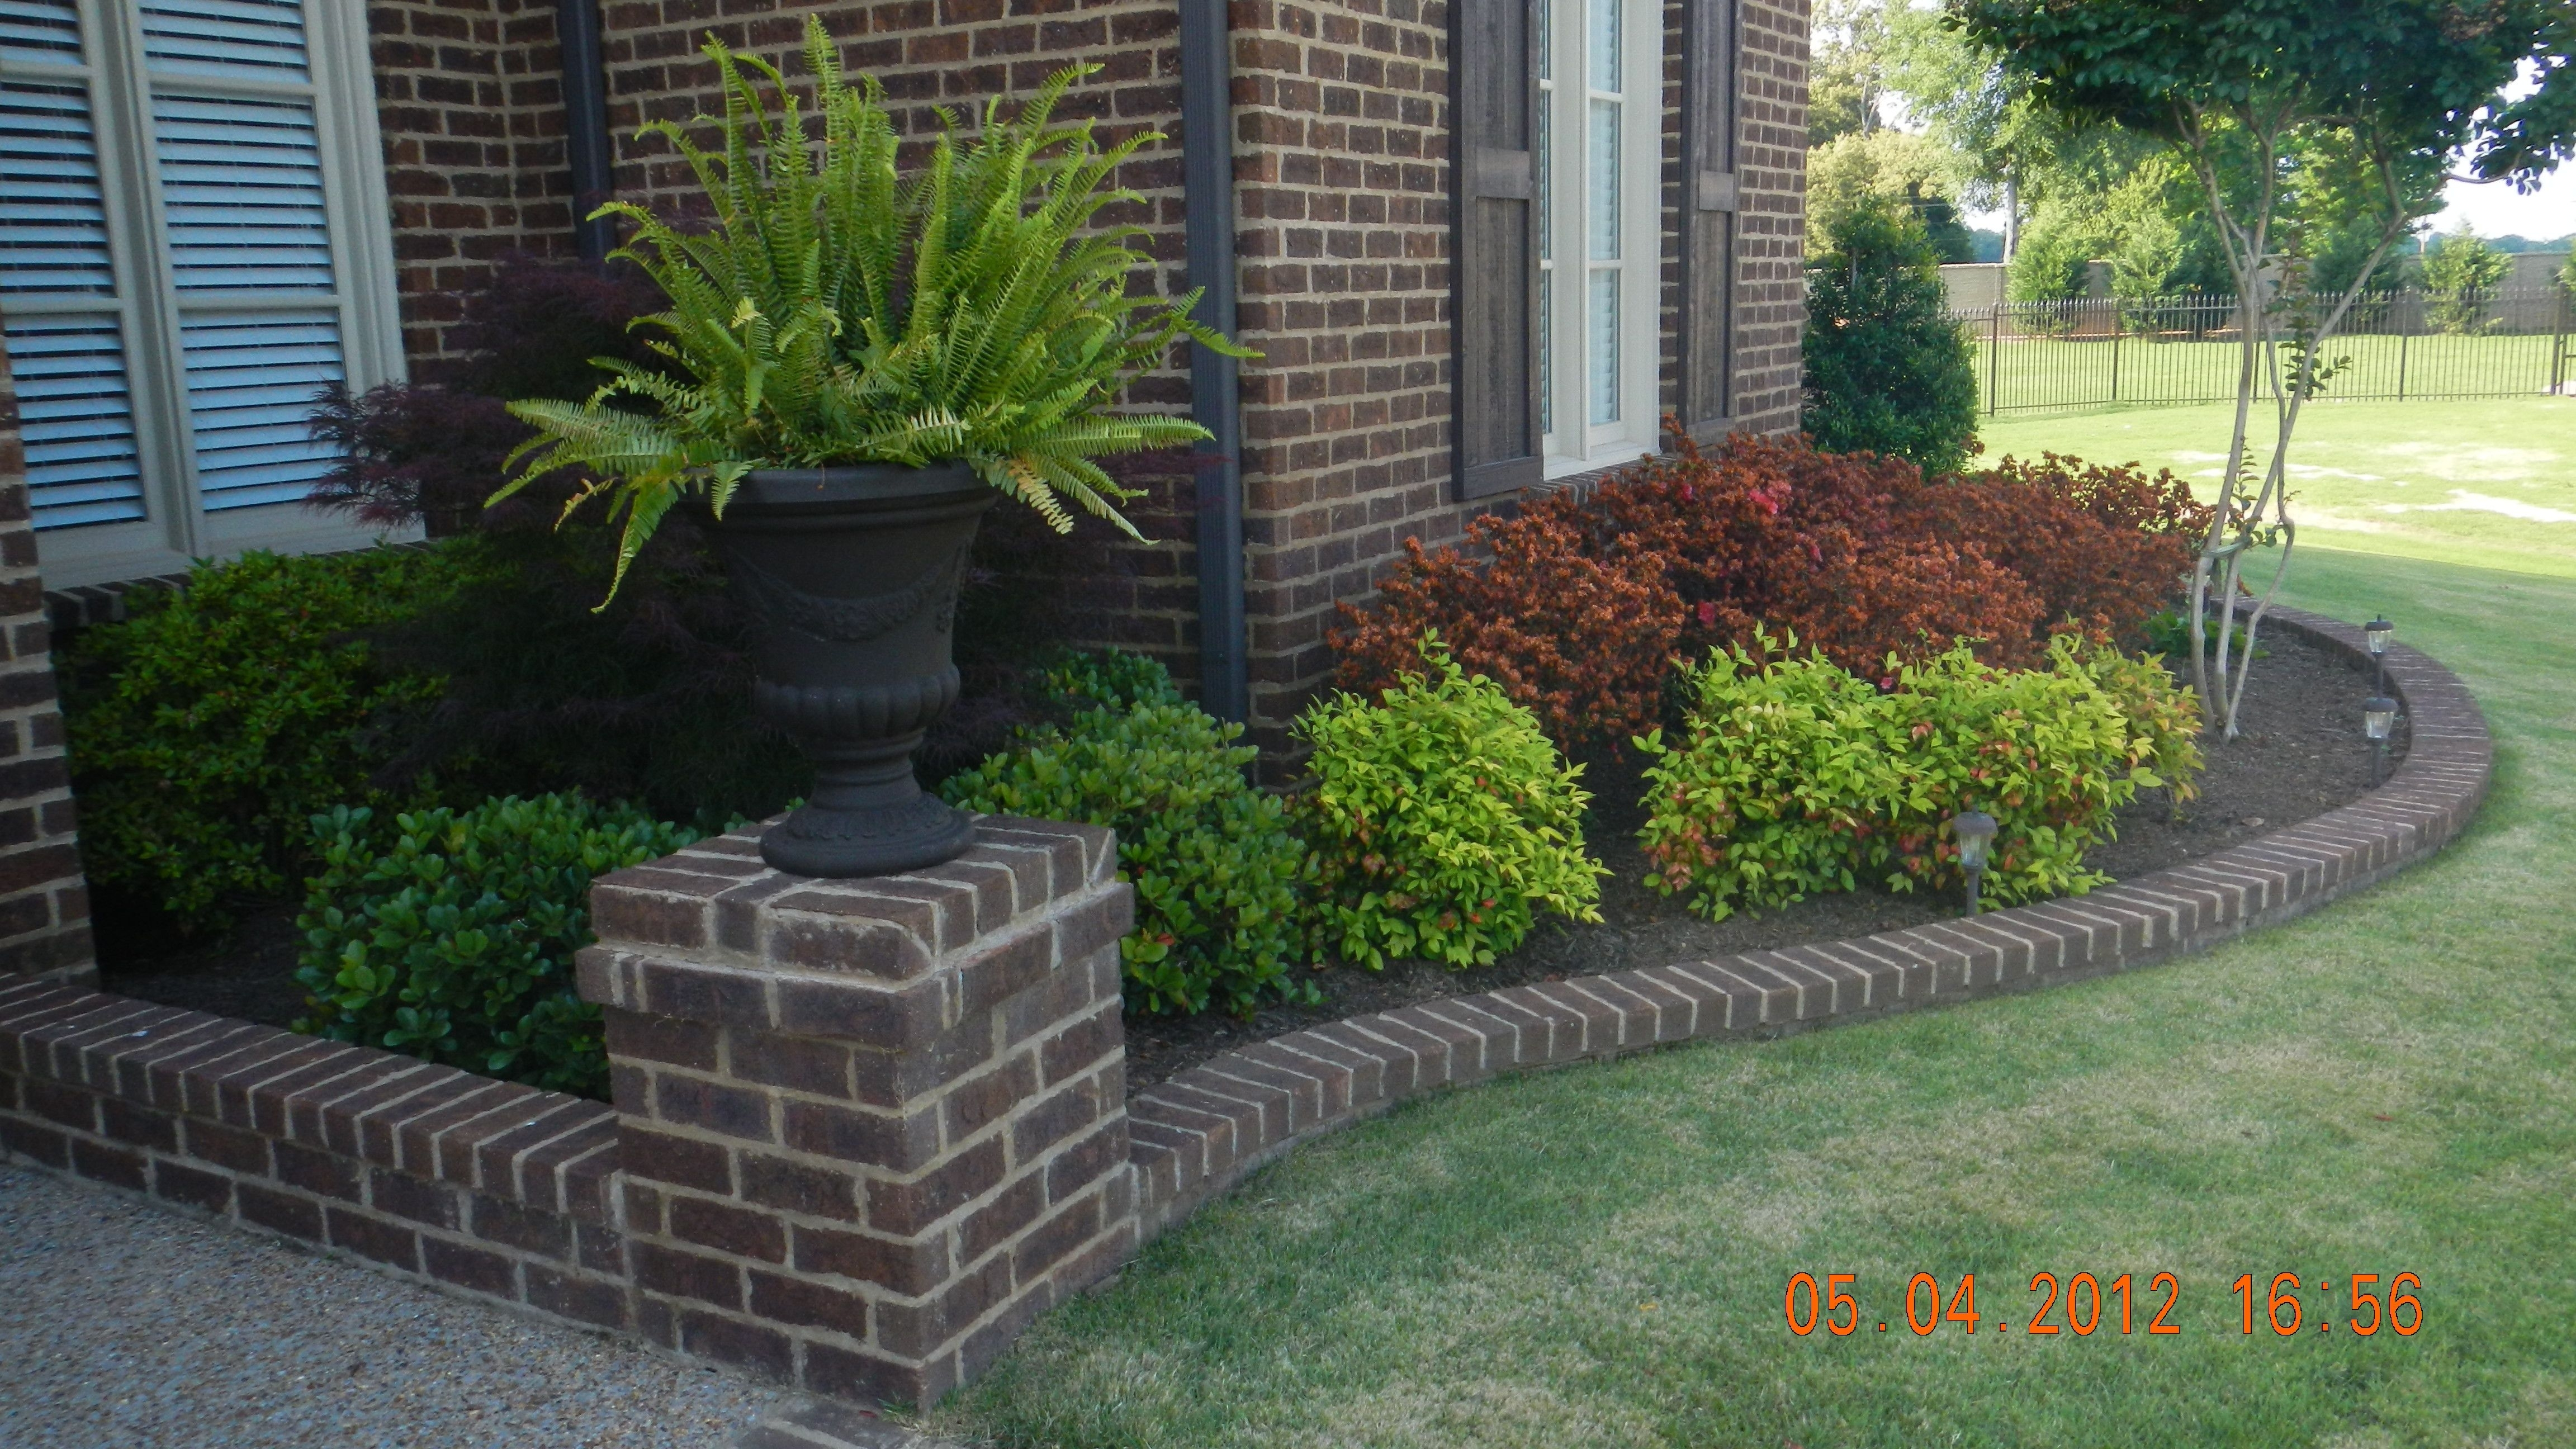 Low Maintenance Landscaping Ideas For Small Yards ... on Low Maintenance Back Garden Ideas id=26613